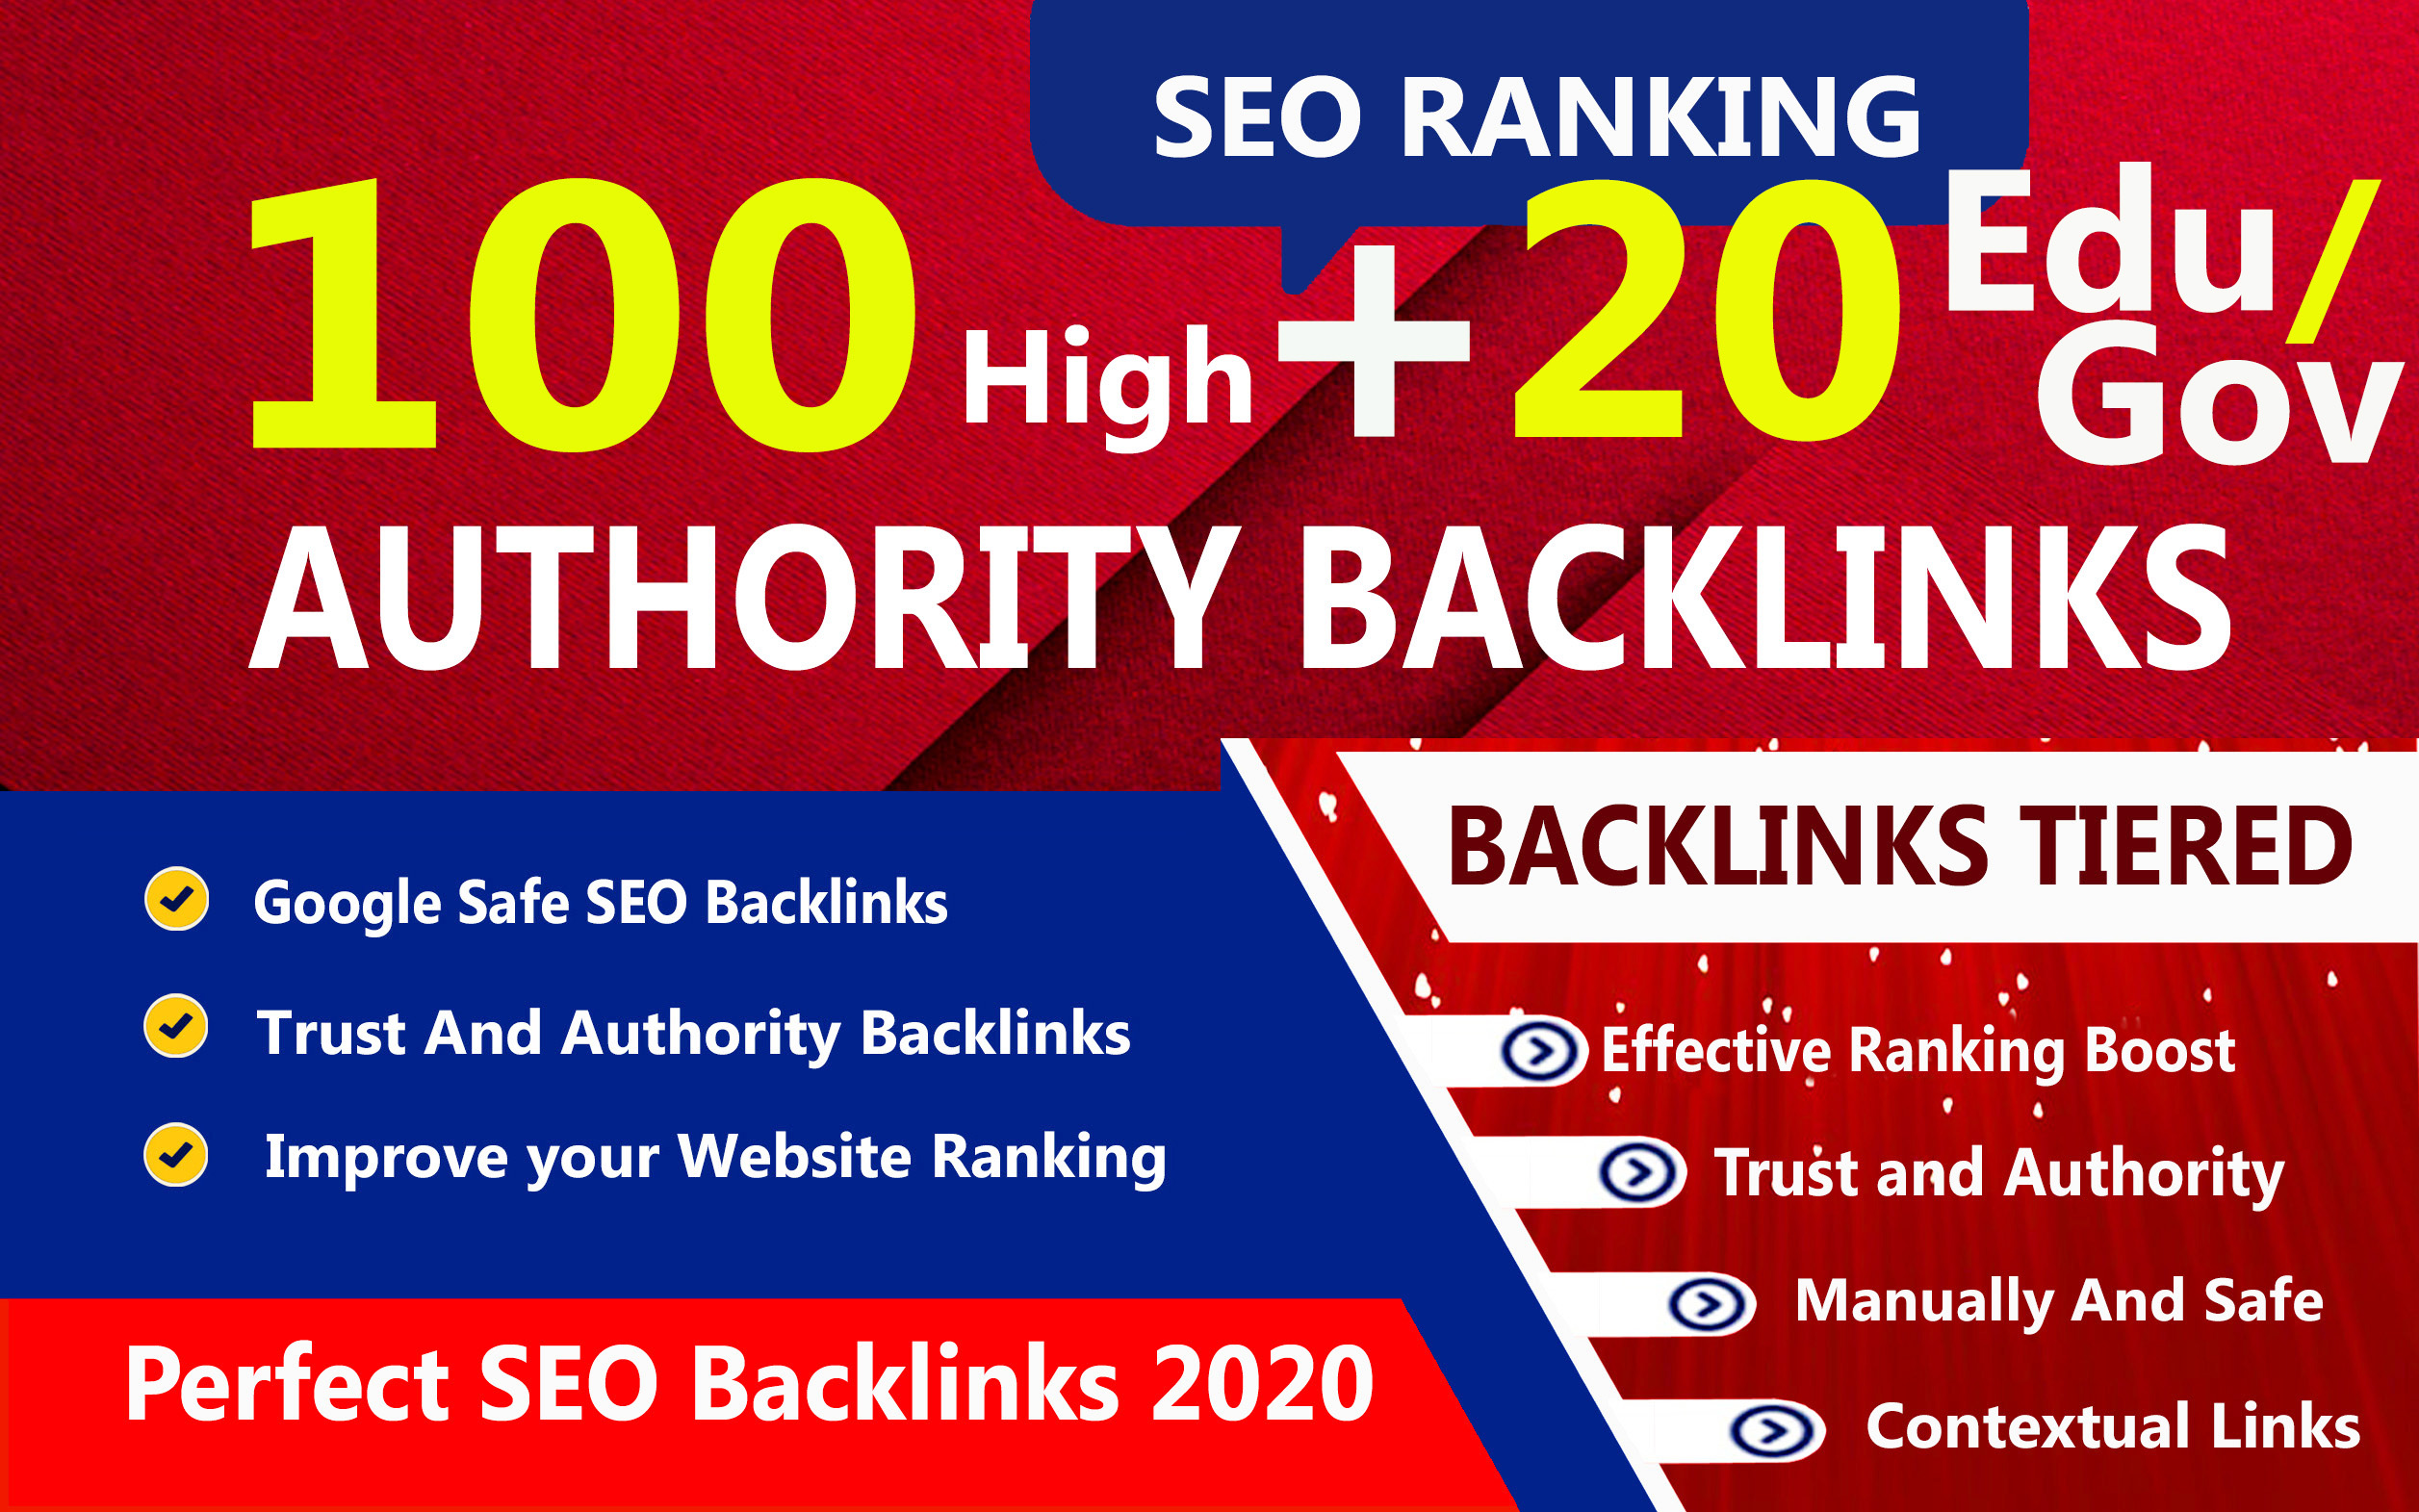 Limited Time - 100 Pr9 + 20 Edu-Gov High Domains Authority Safe Seo Backlinks From - White Hat SEO